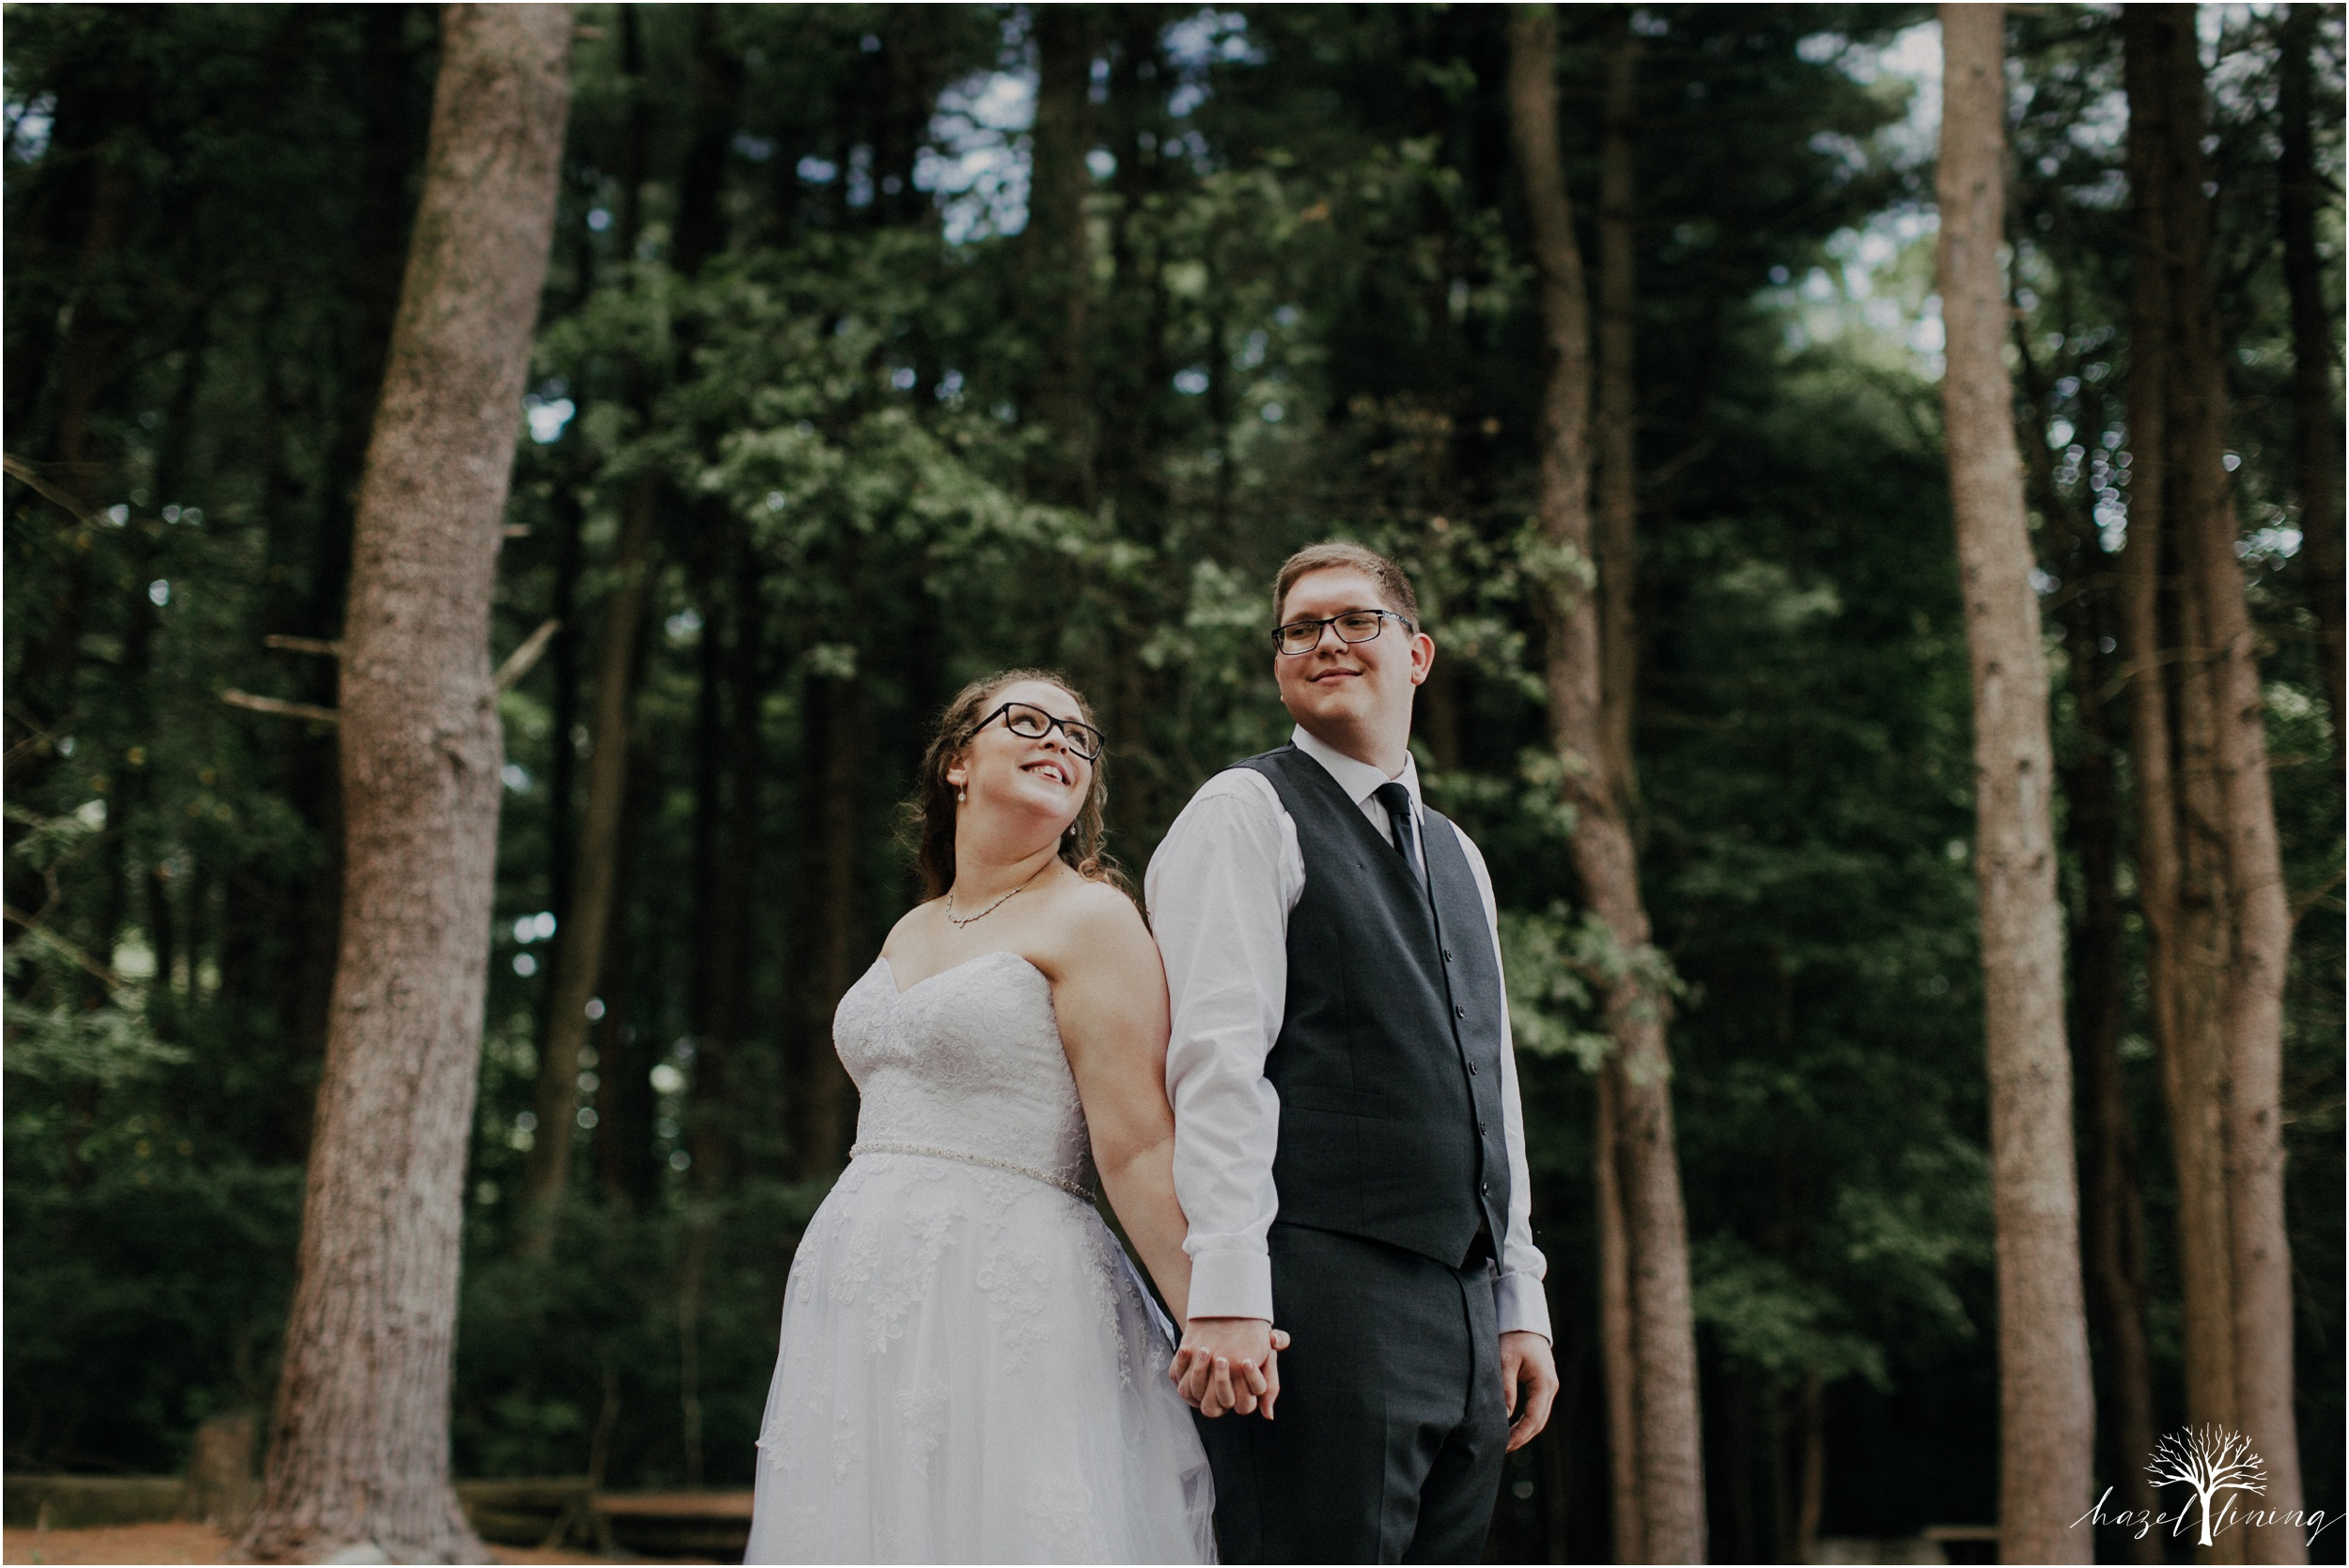 laura-zach-mccaskill-harmony-hall-lebanon-valley-college-summer-wedding-hazel-lining-photography-destination-elopement-wedding-engagement-photography_0141.jpg